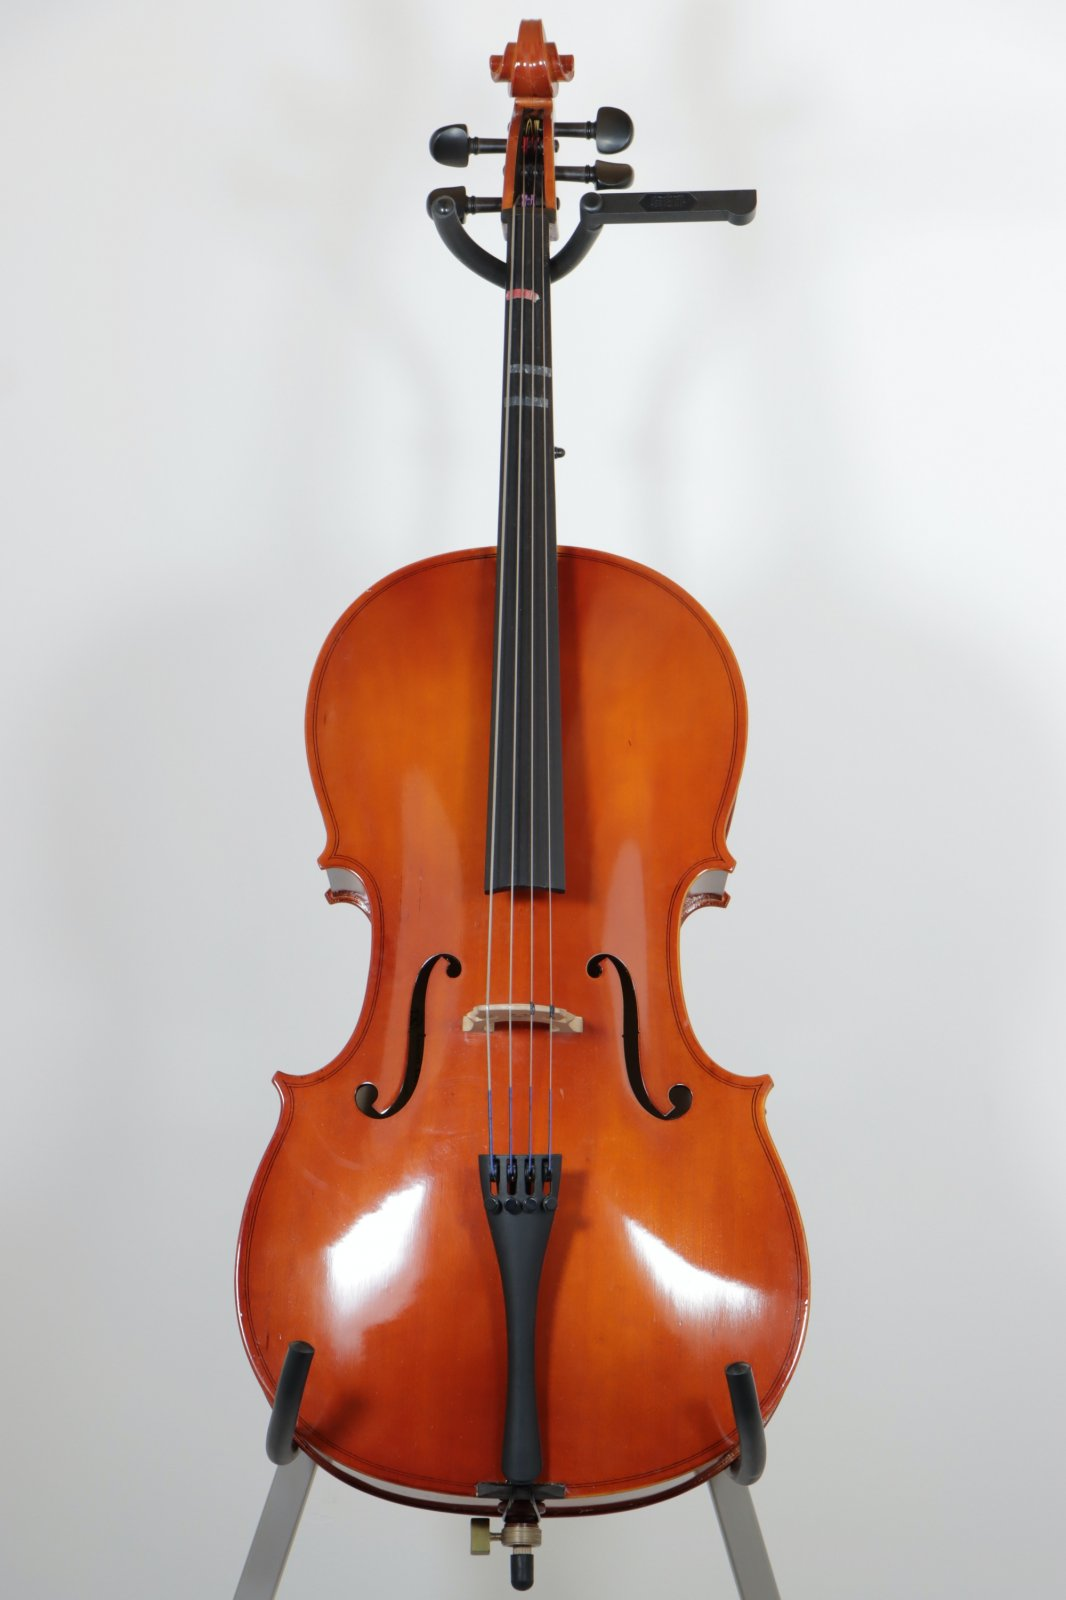 USED Eastman VC80 1/2 Size Student Cello with Case and Bow